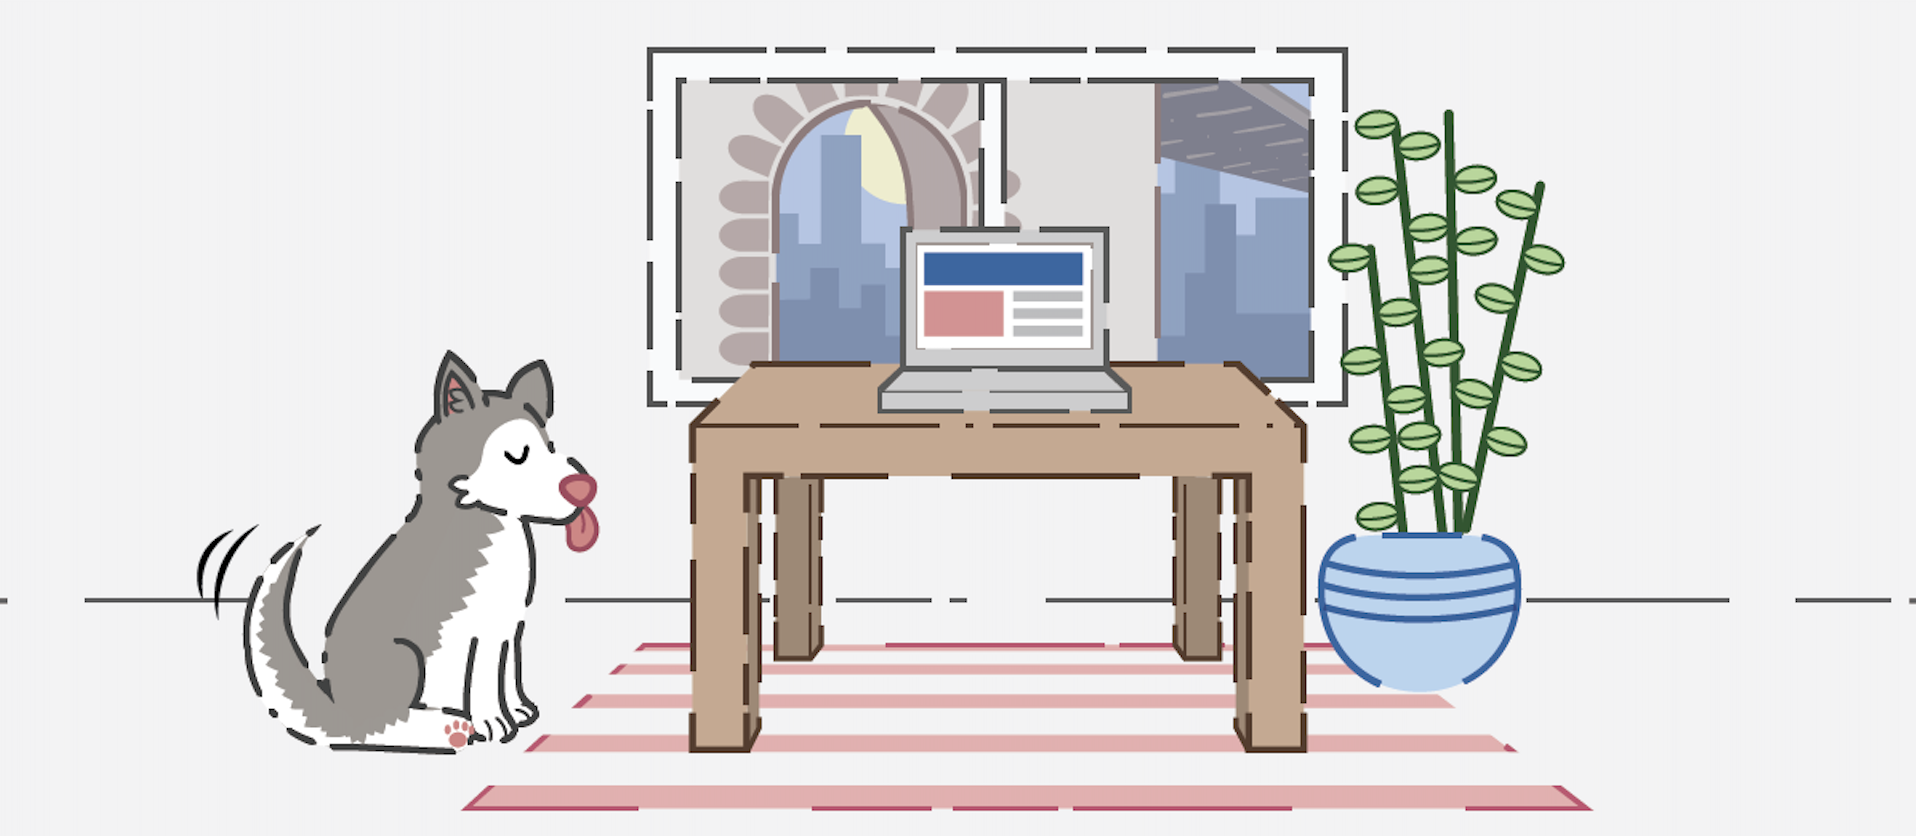 Office illustration with a dog and a plant in it